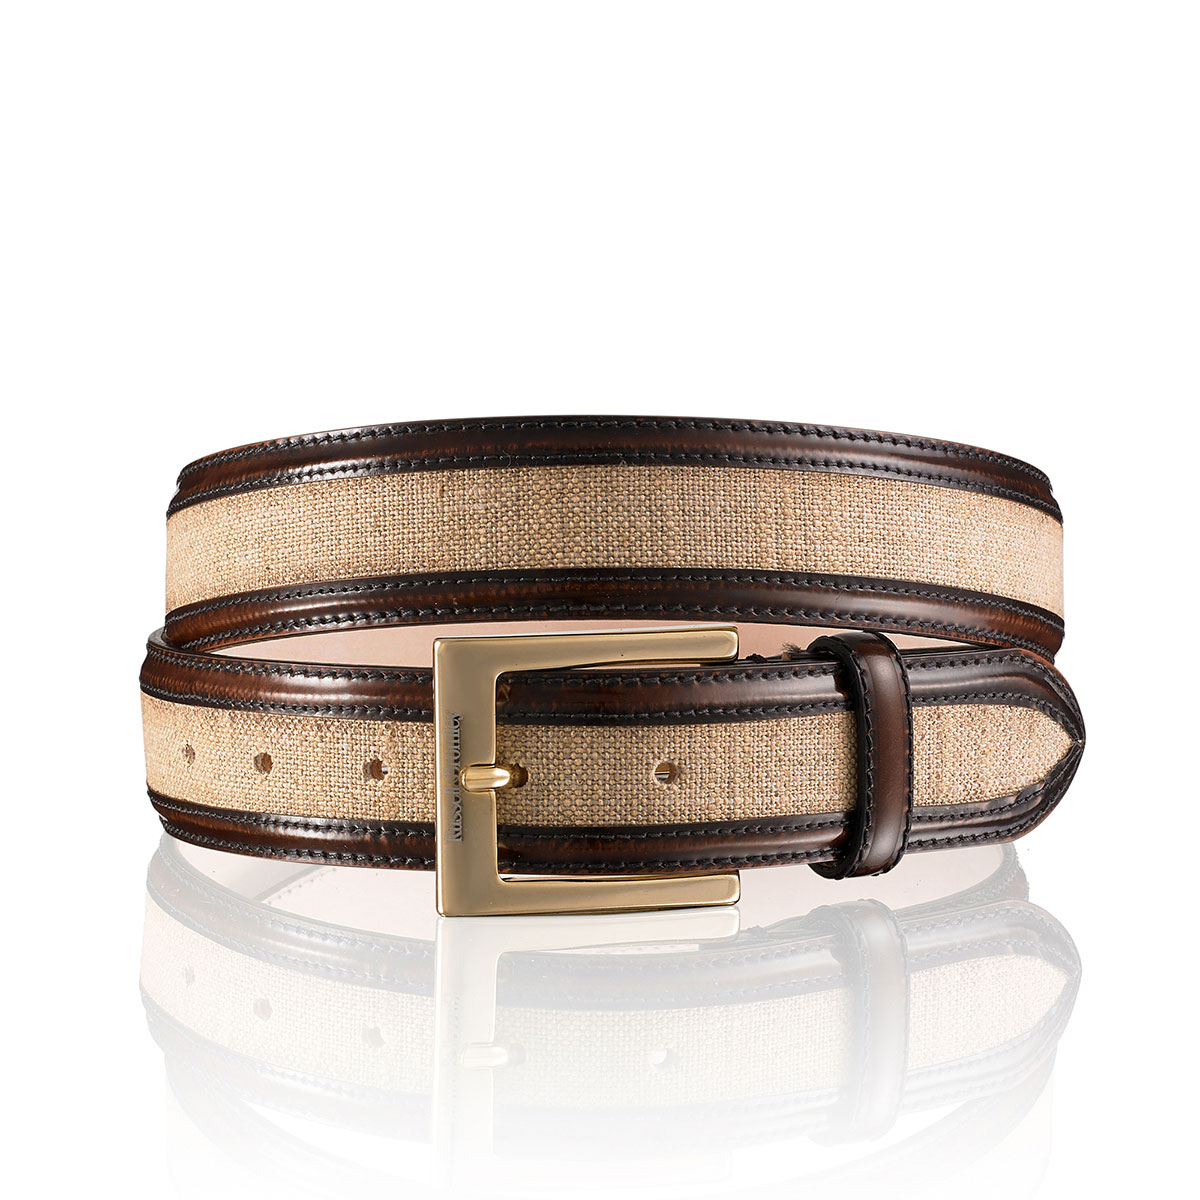 Russell And Bromley DOLCE Buckle & Keeper Belt